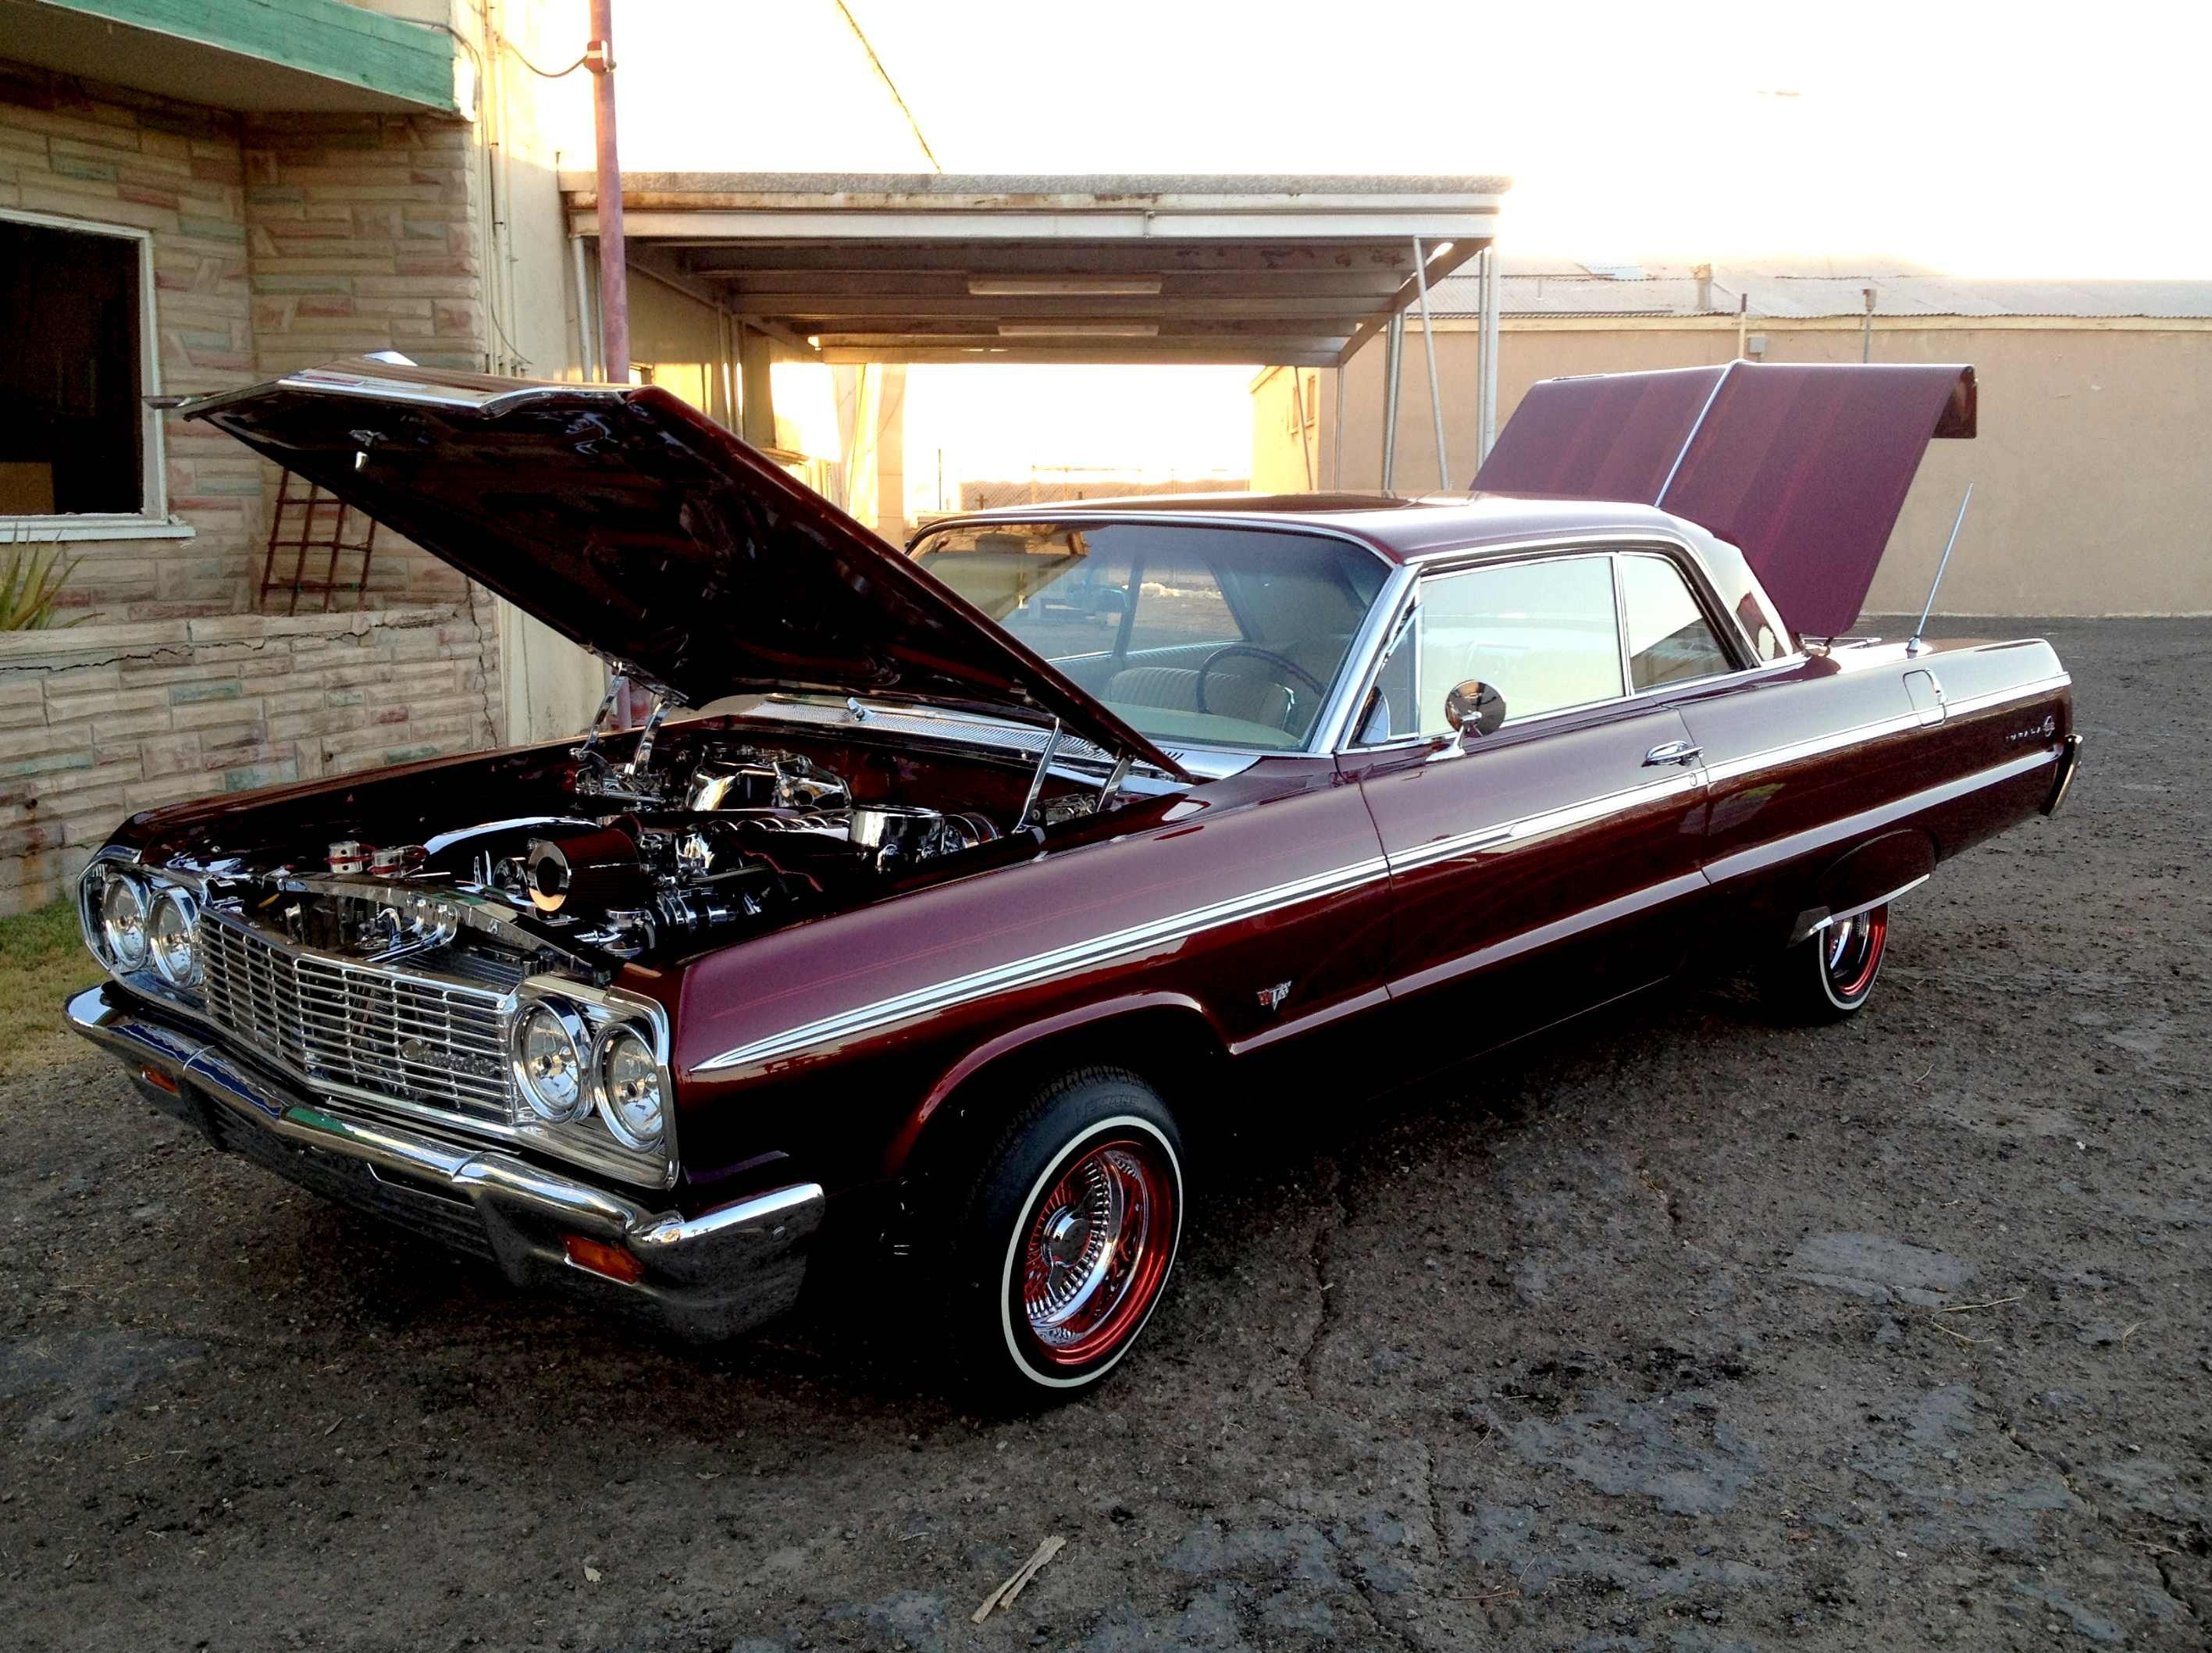 In 1964 this Chevy Impala SS with white rag top was my car She was